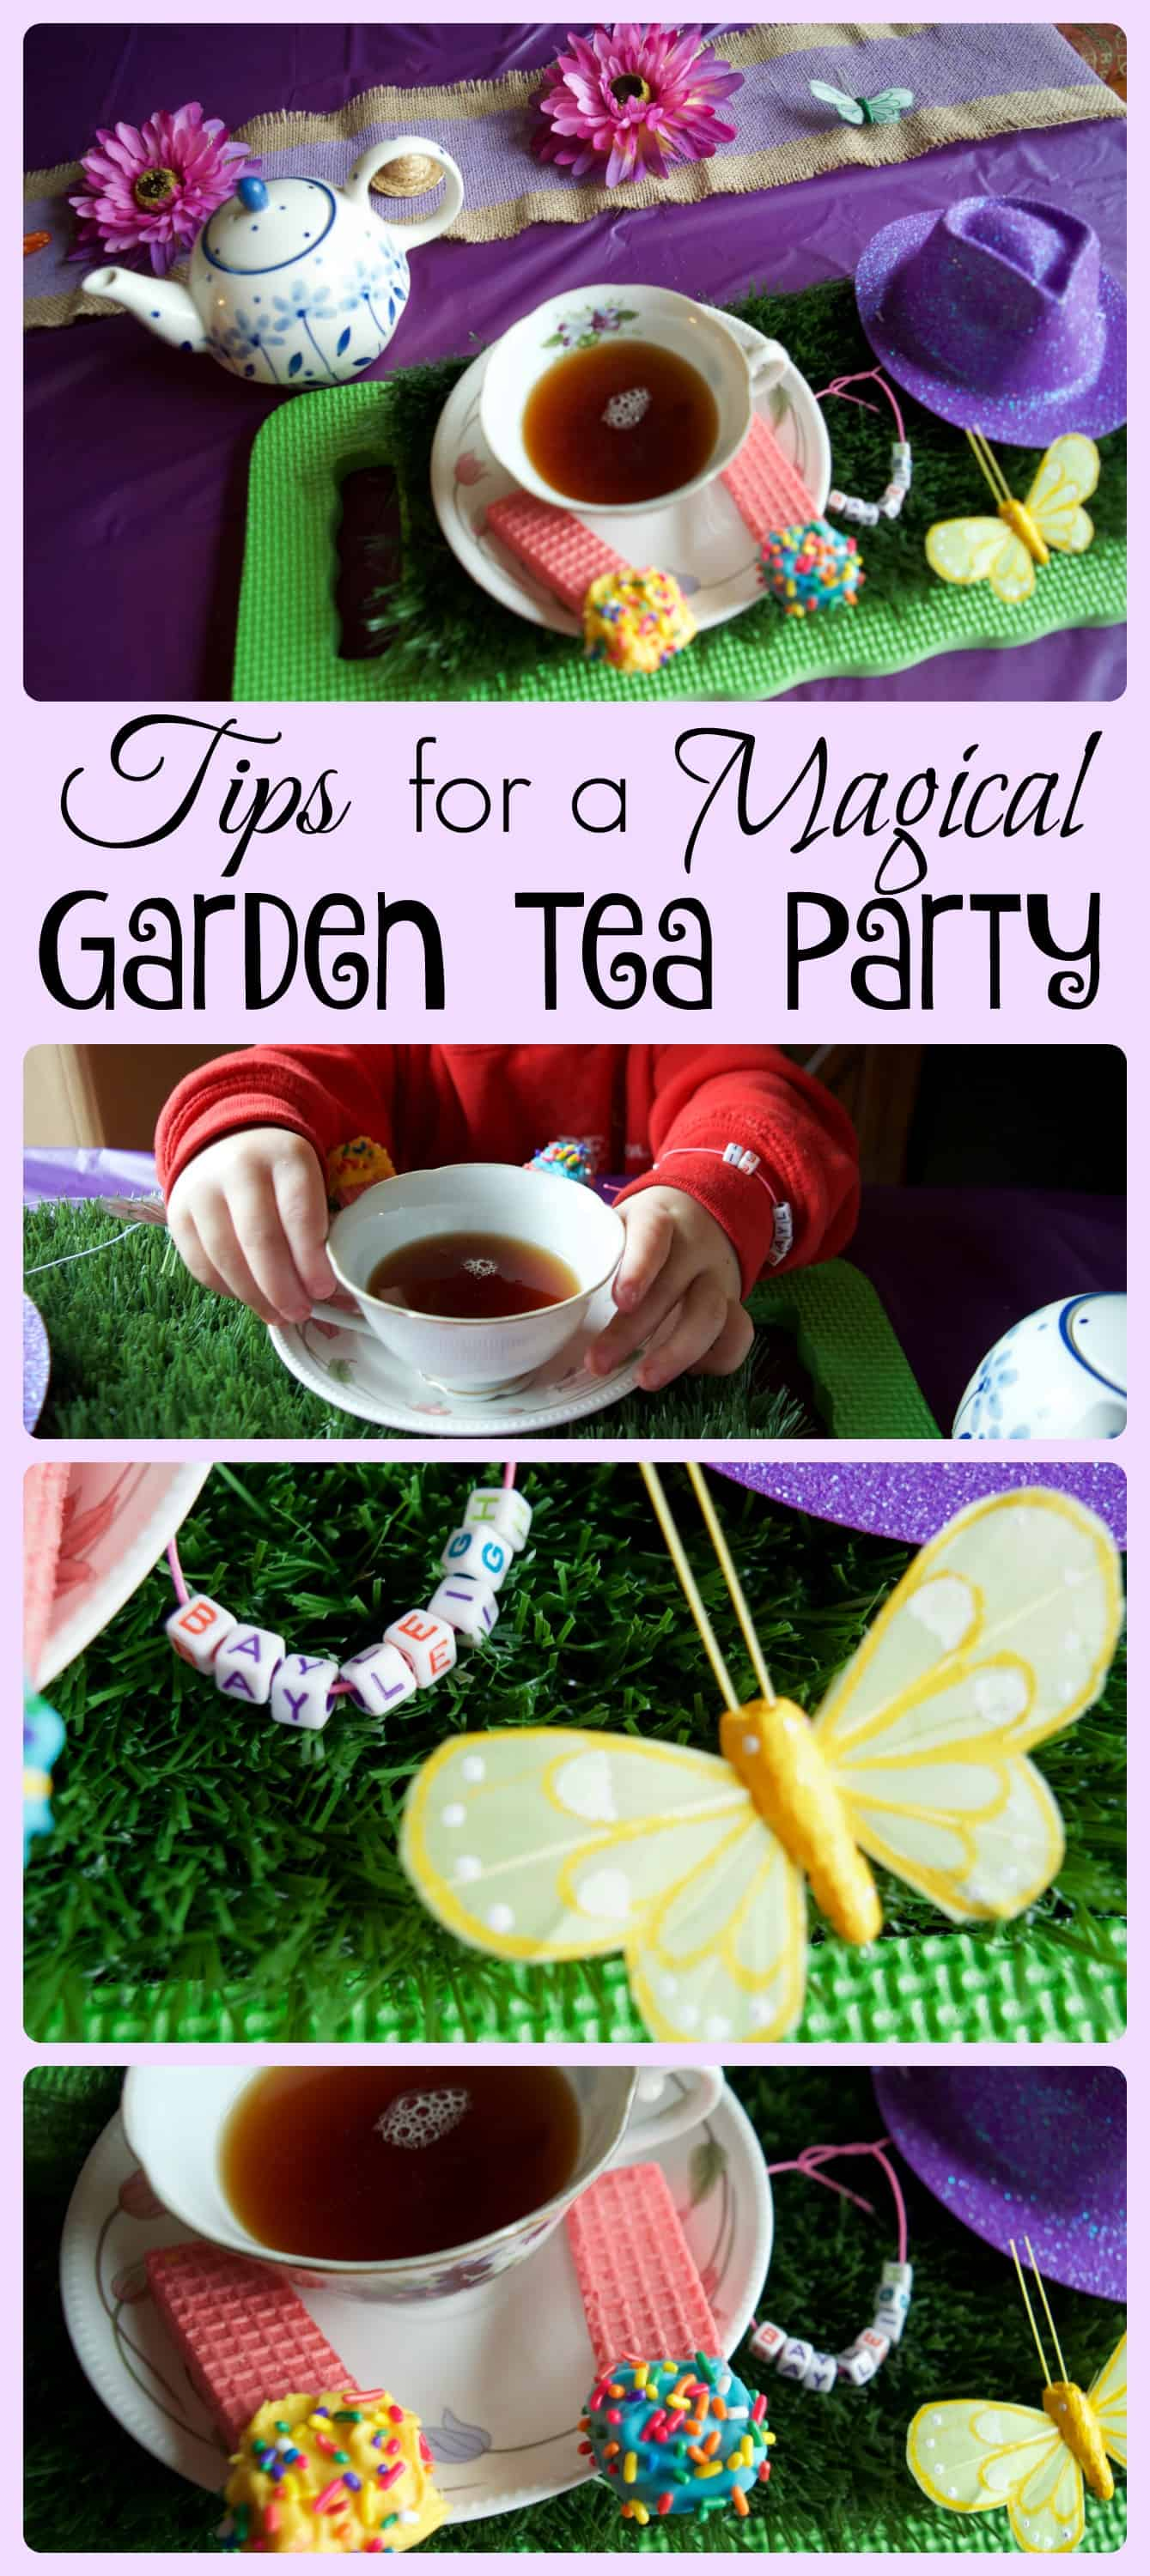 Tips for Hosting a Magical Garden Tea Party for Kids